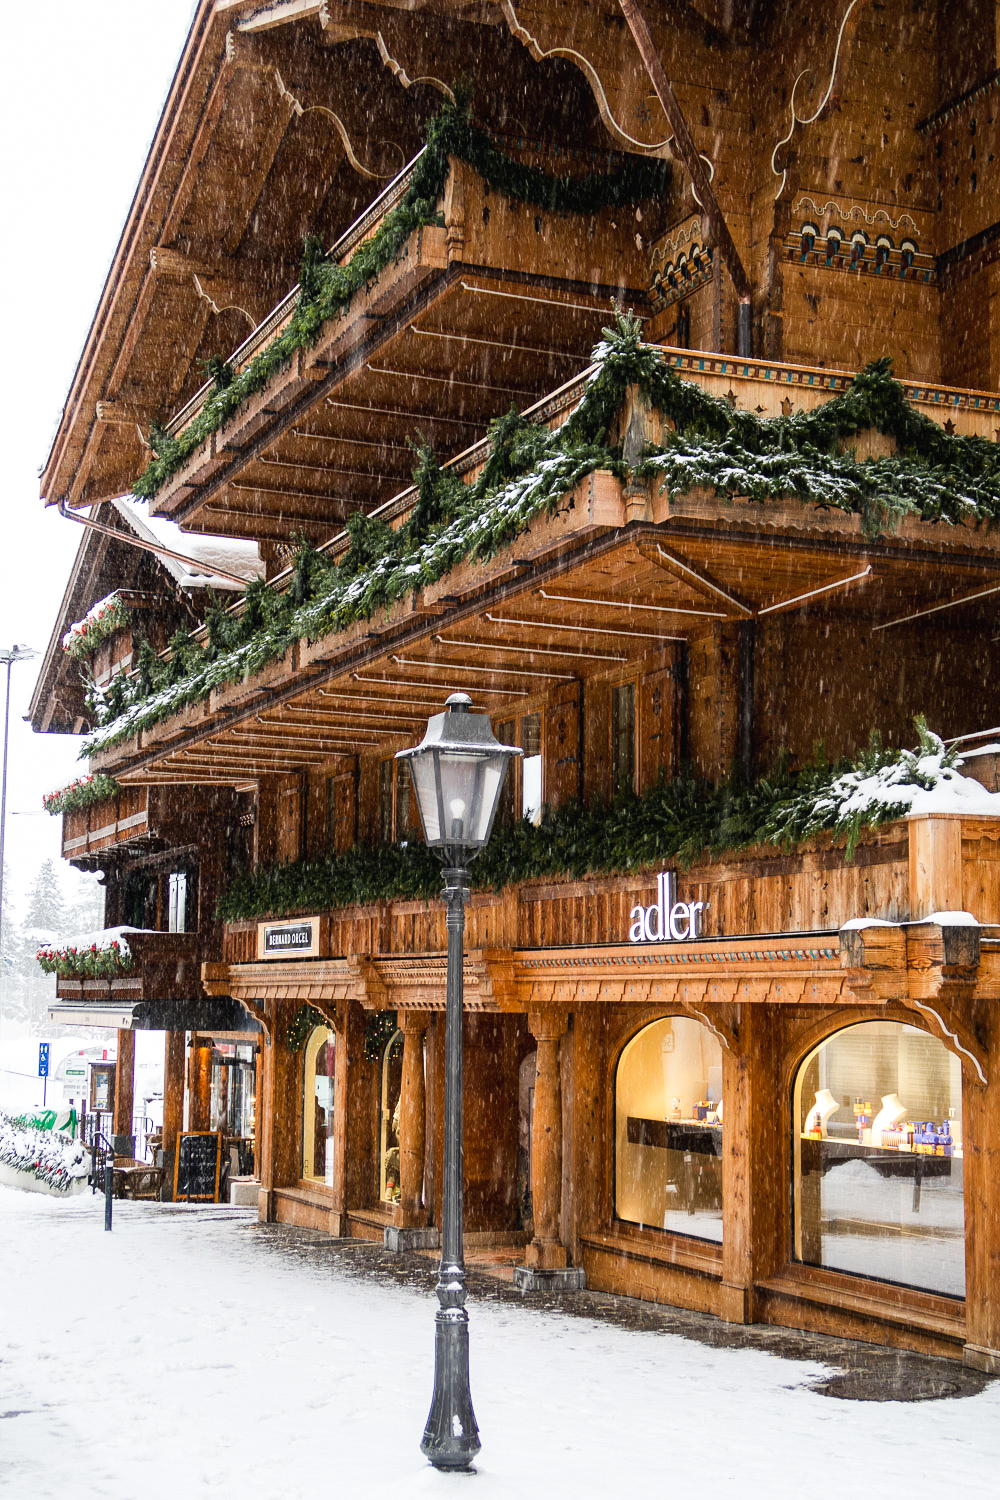 The charming town of Gstaad in south-western Switzerland is a popular holiday destination for ski lovers and for the International jet-set